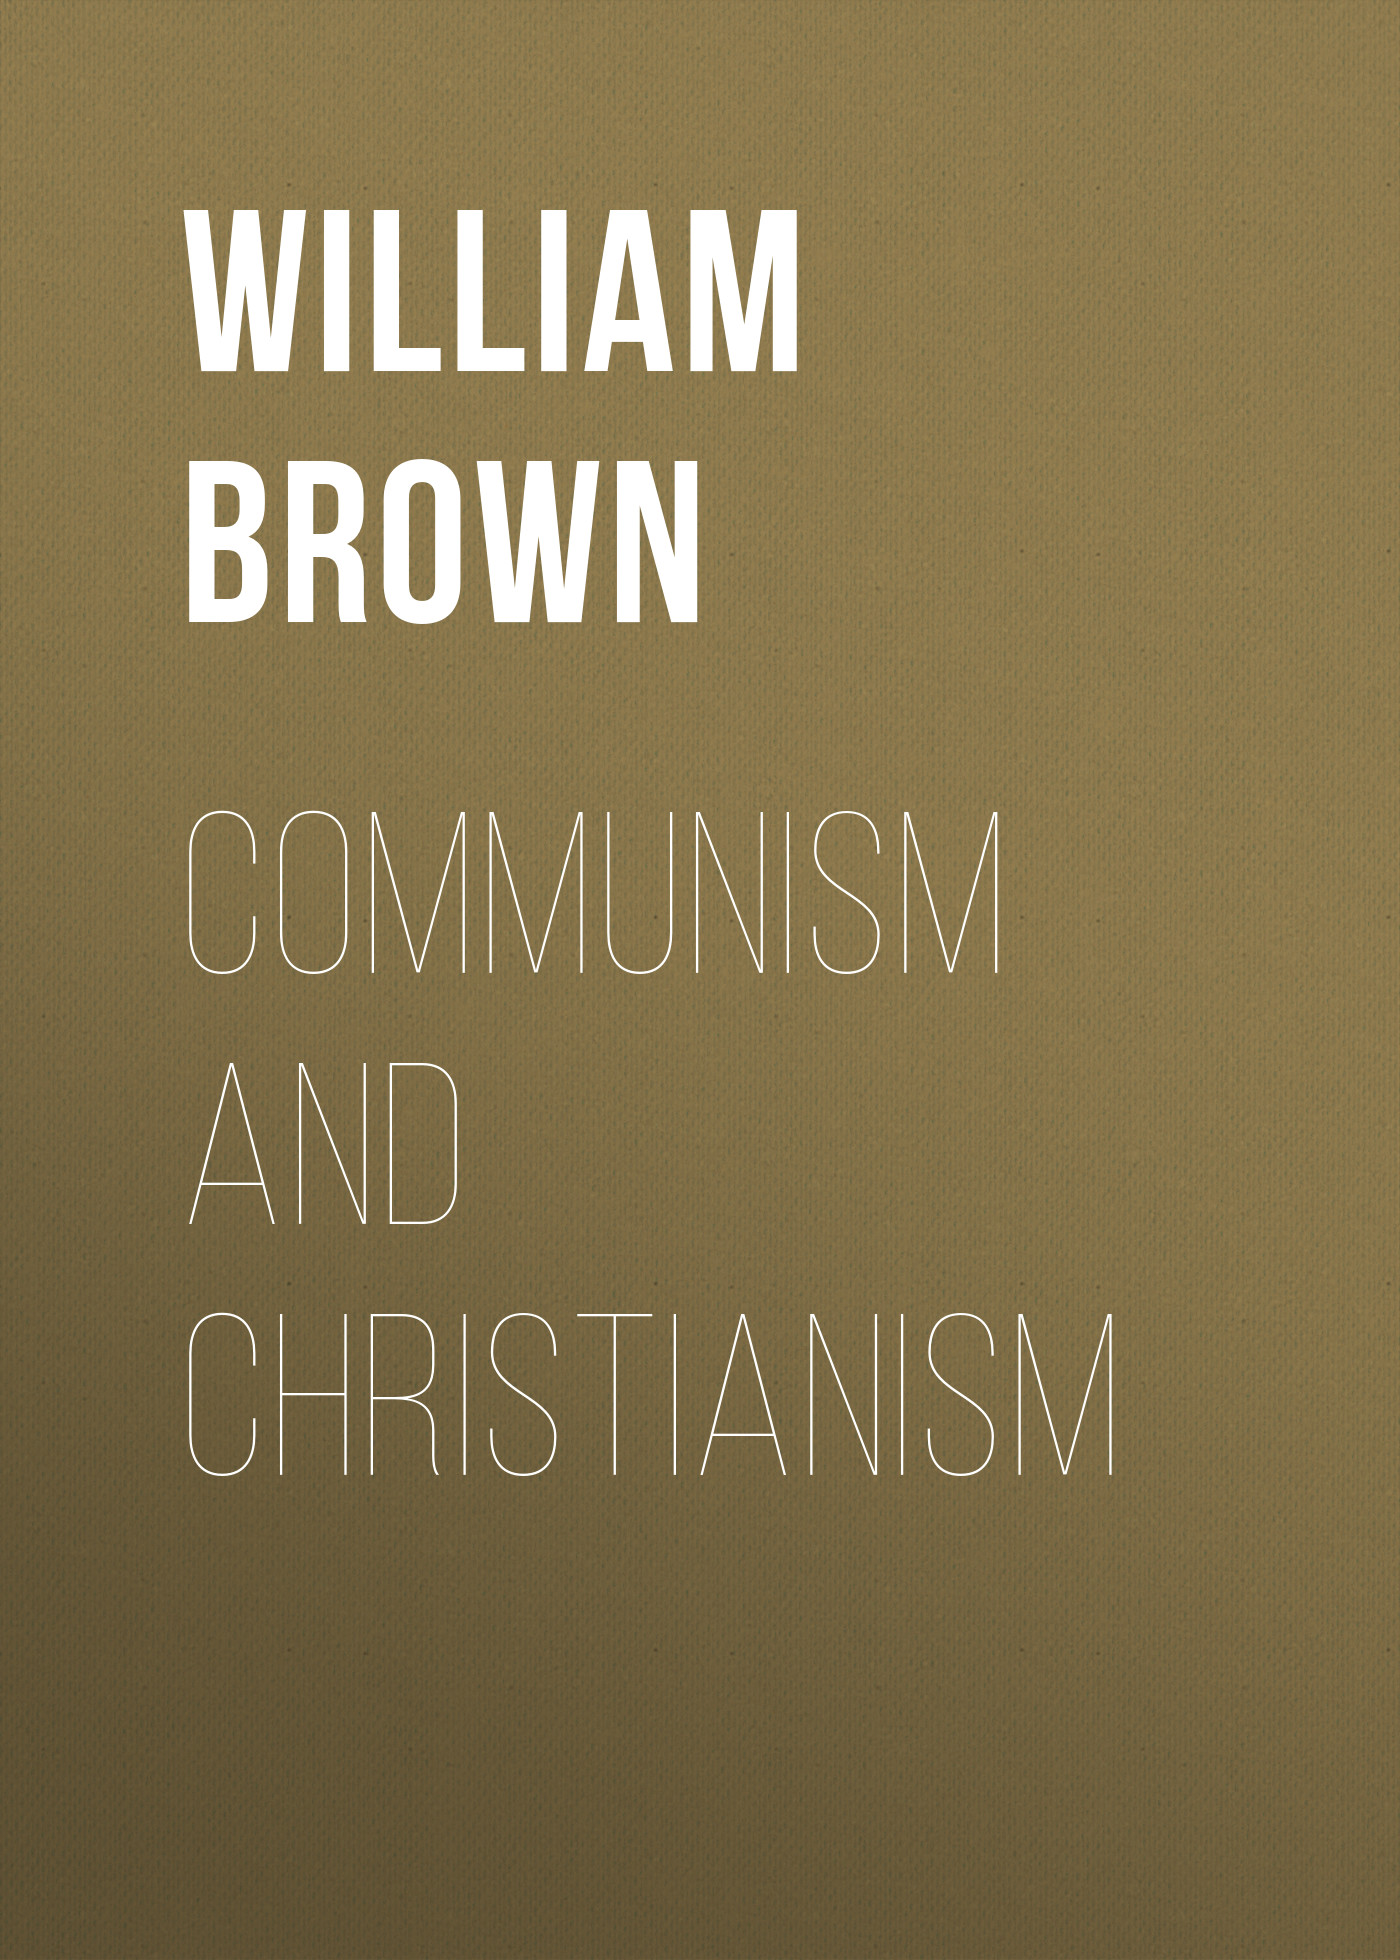 Brown William Montgomery Communism and Christianism bastiat frédéric protection and communism